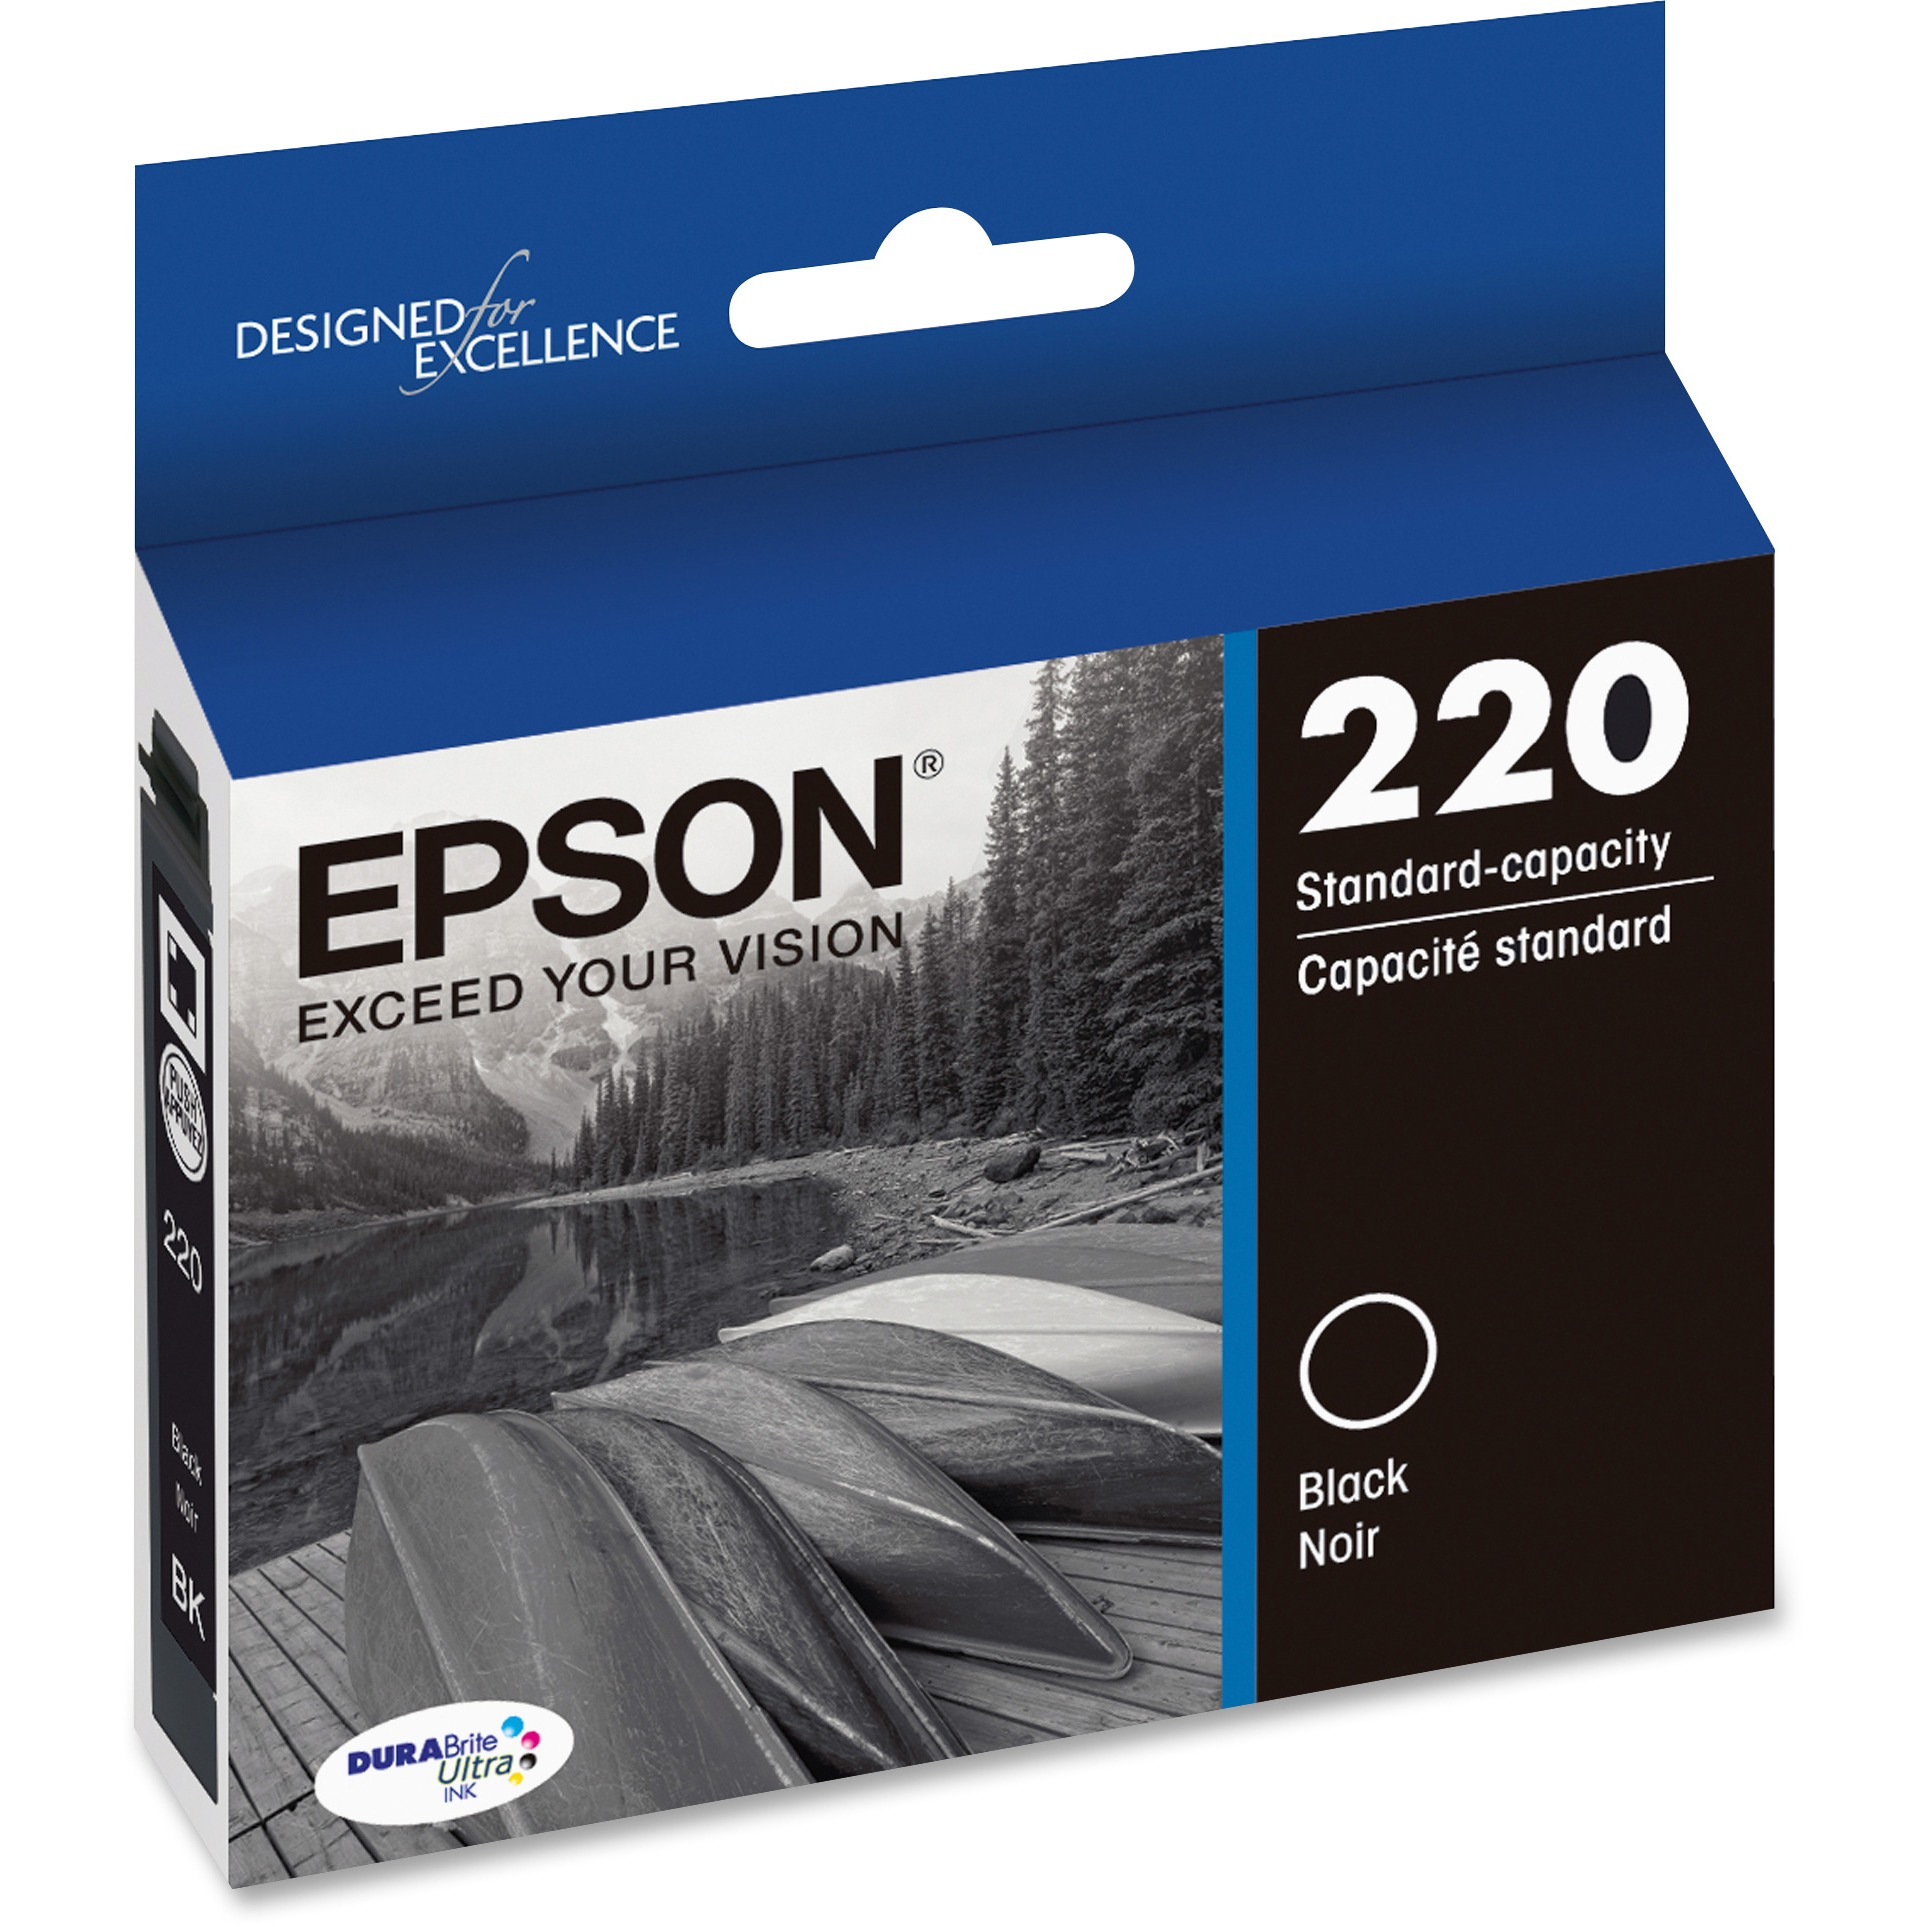 Epson 220 DURABrite Ultra Ink Original Black Ink Cartridge